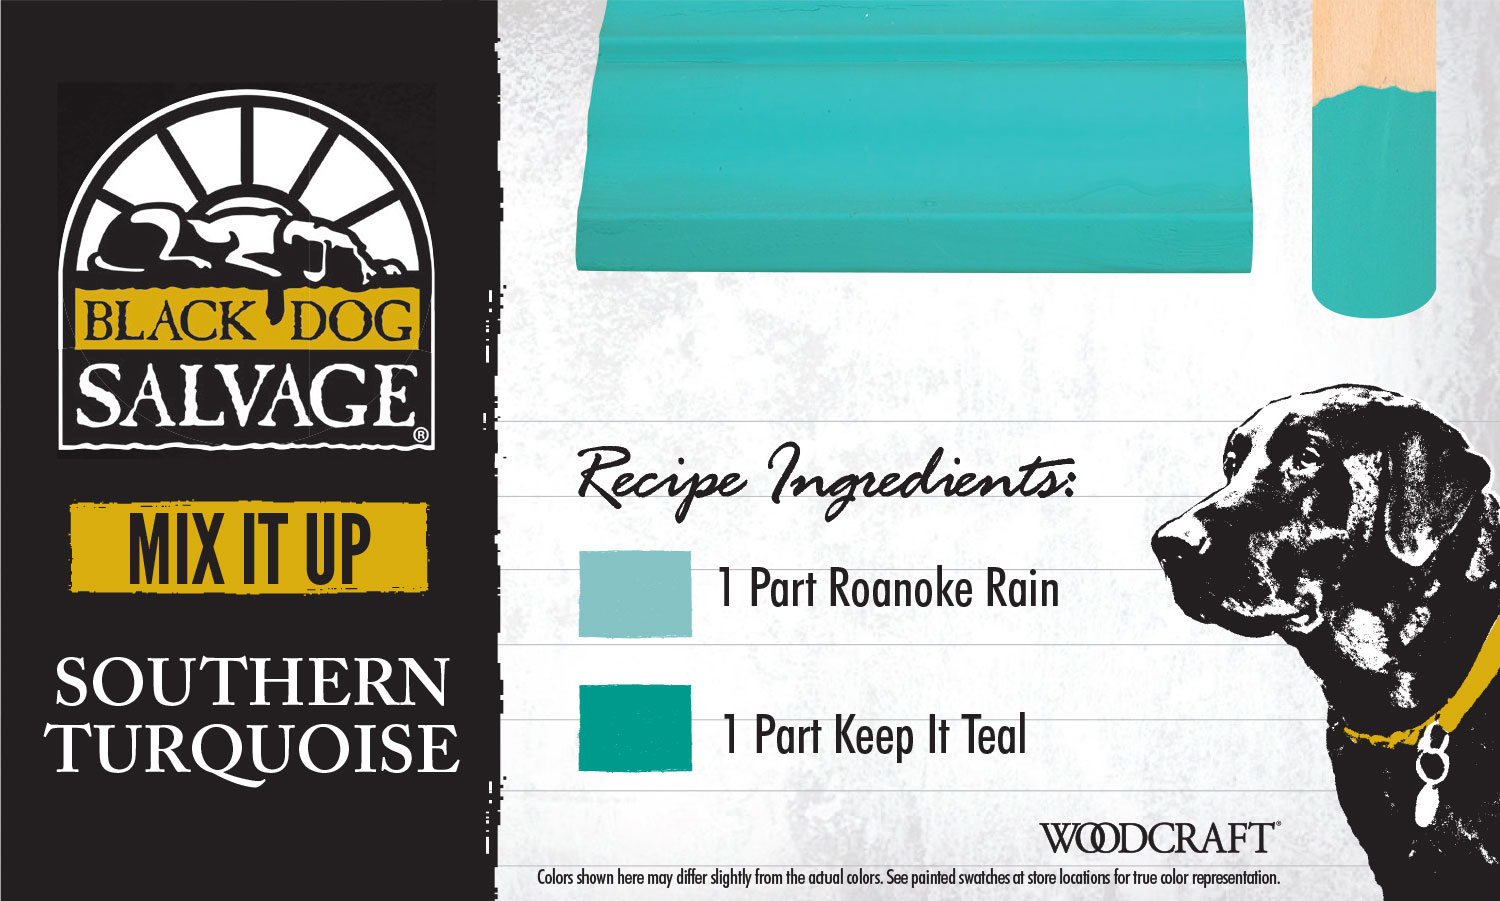 """""""Southern Turquoise"""" is made from1 Part """"Roanoke Rain"""" and 1 Part """"Keep It Teal"""""""